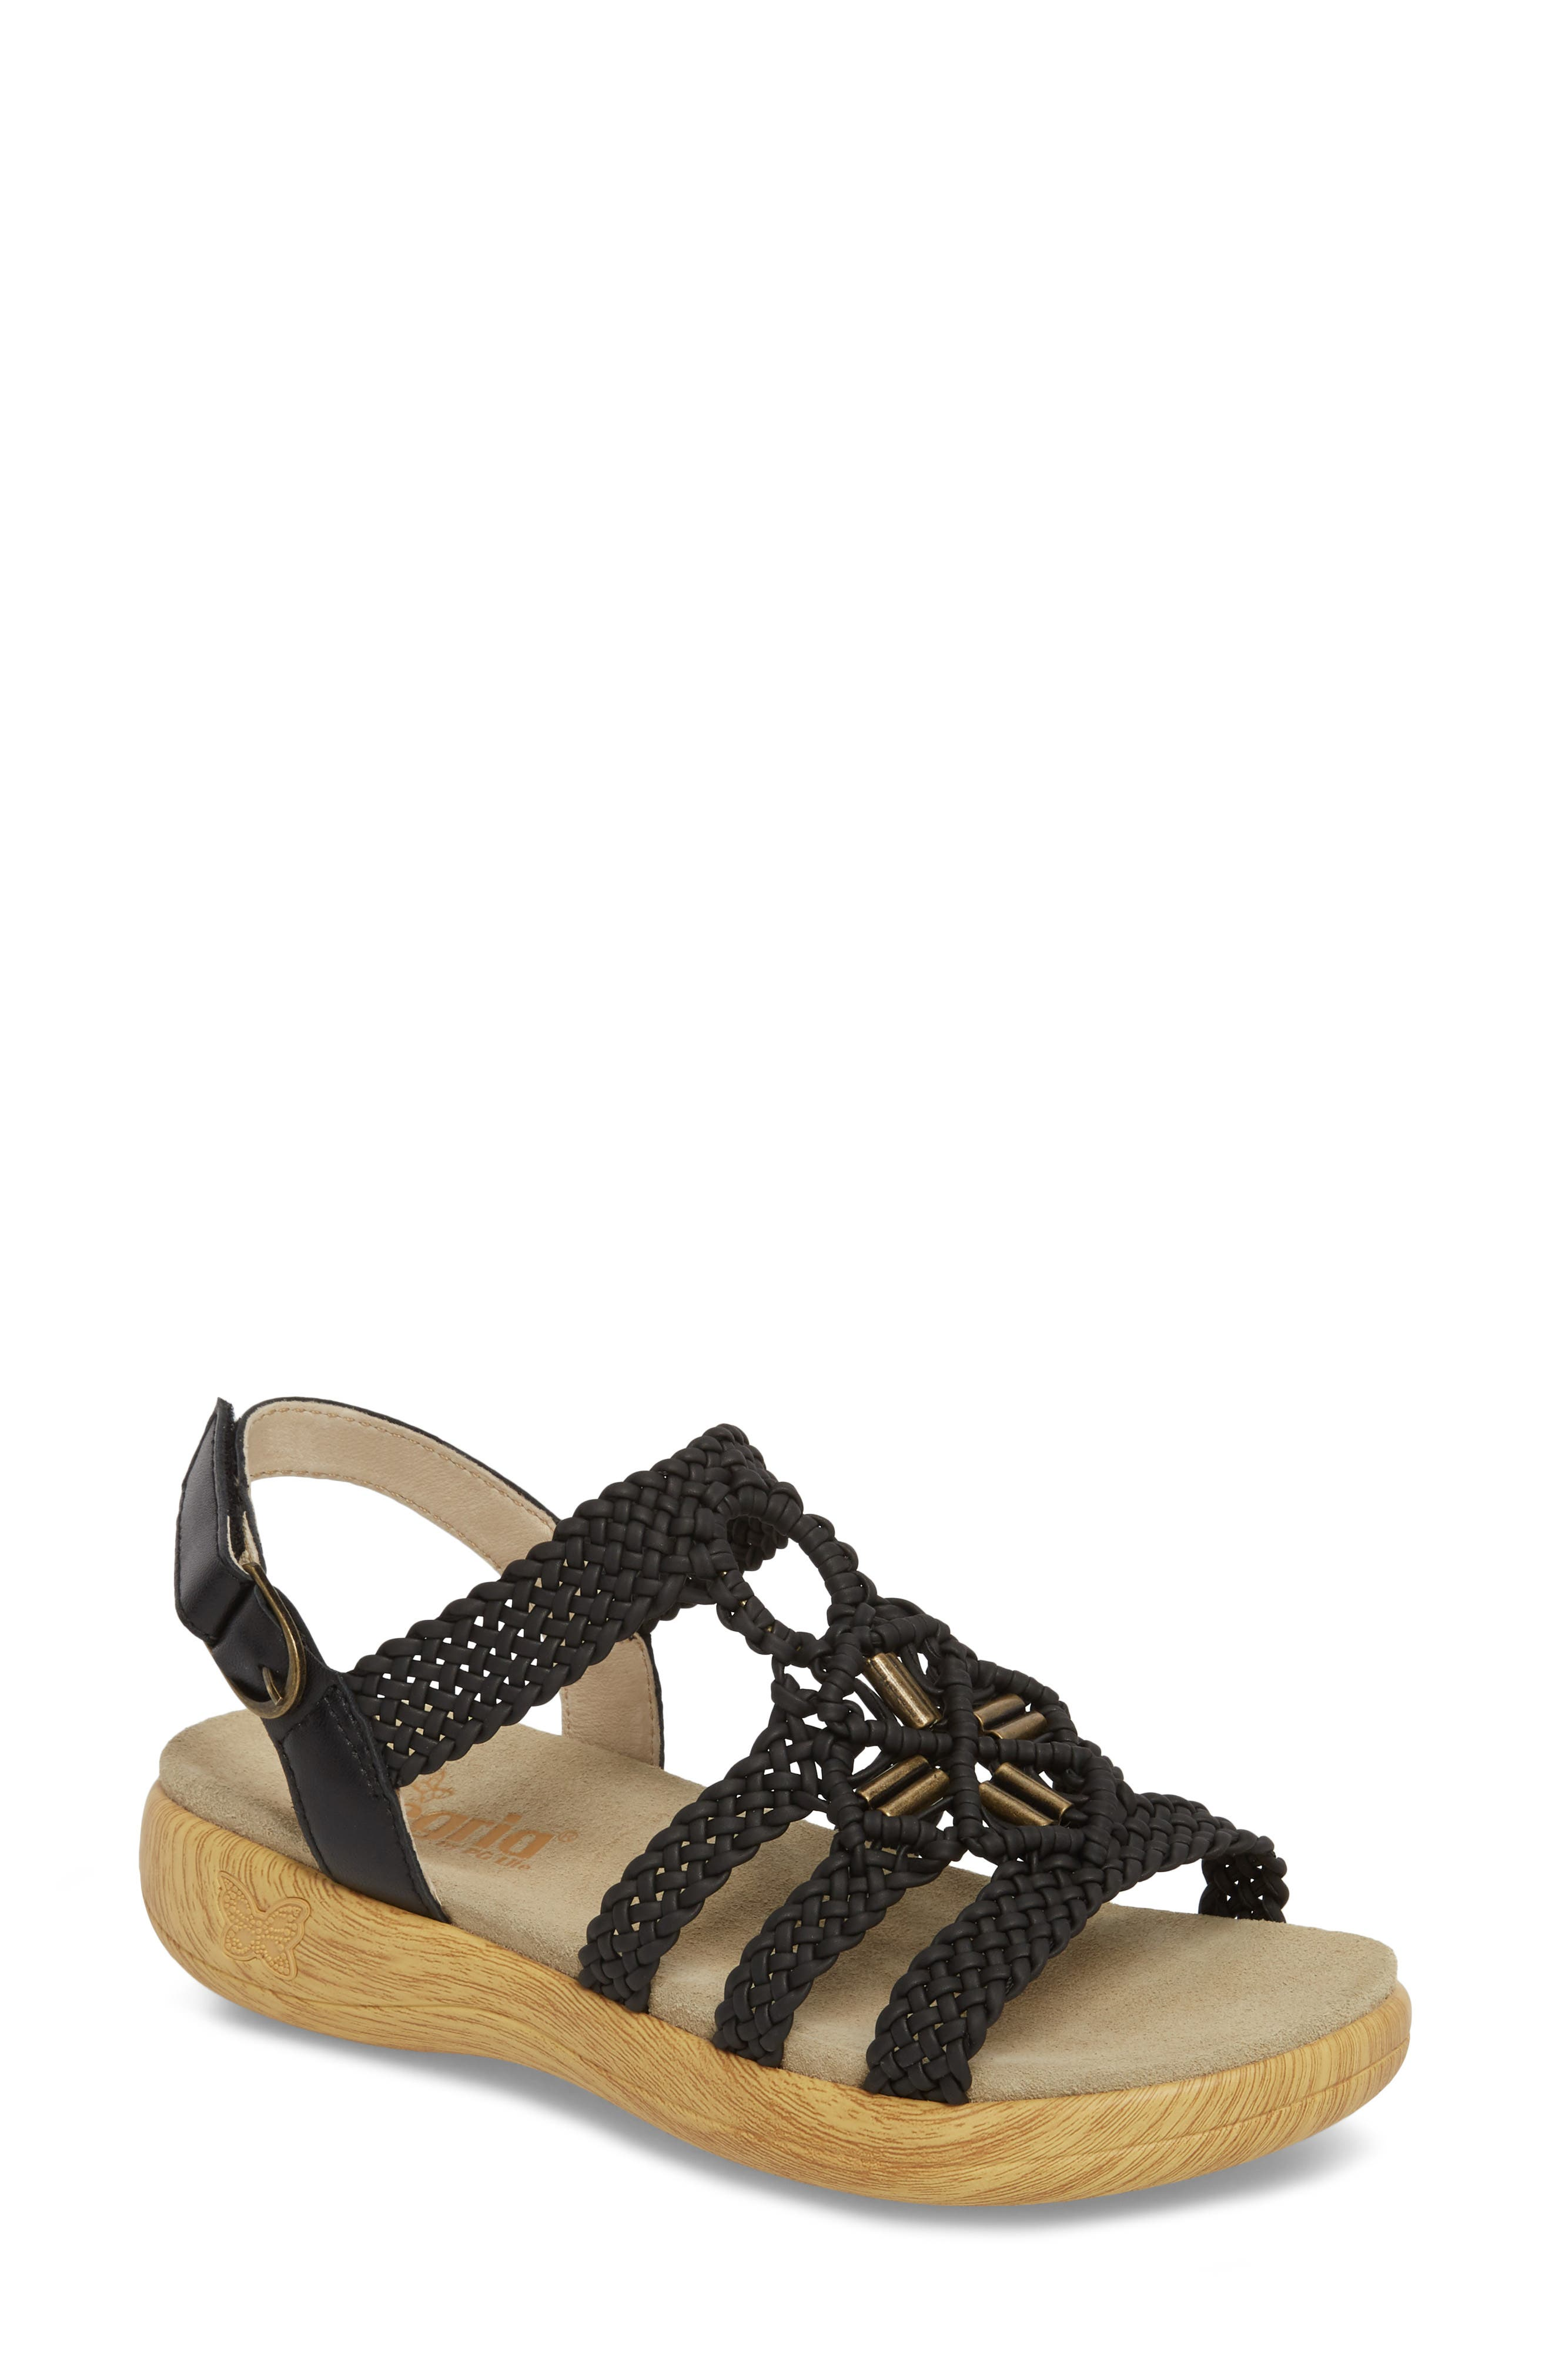 Jena Sandal,                         Main,                         color,